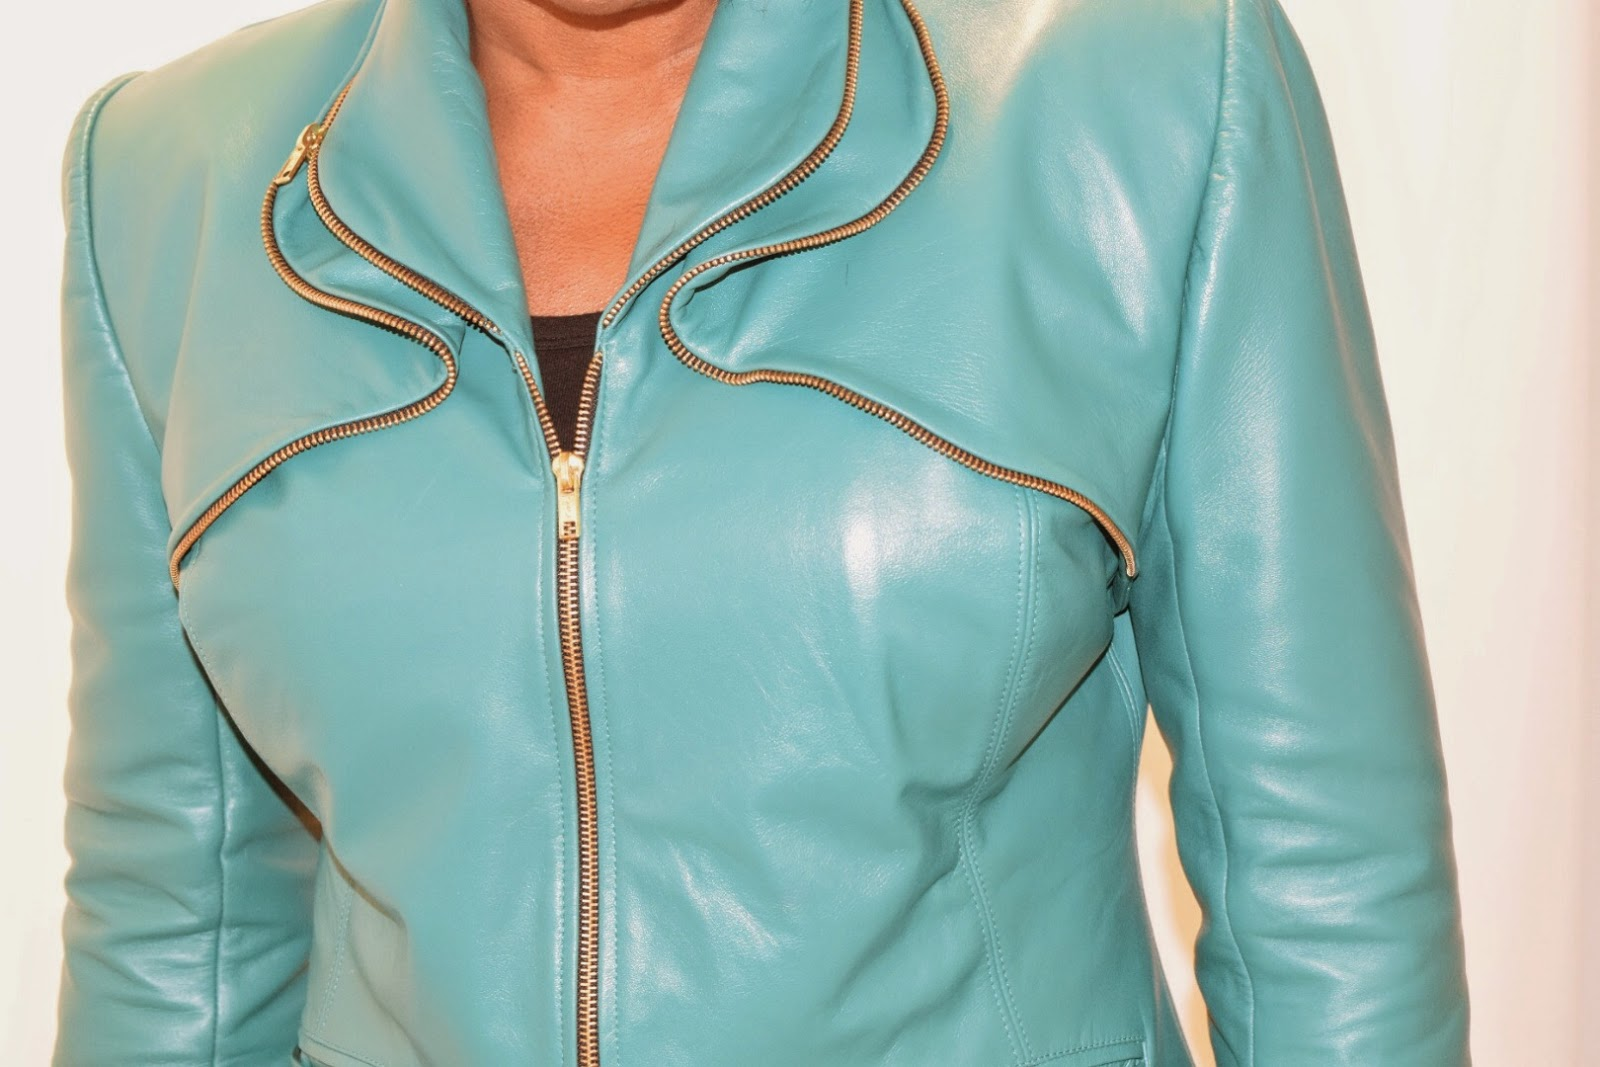 Teal, green lambskin leather jacket by sewtofit.com Sewing with leather and zippers.